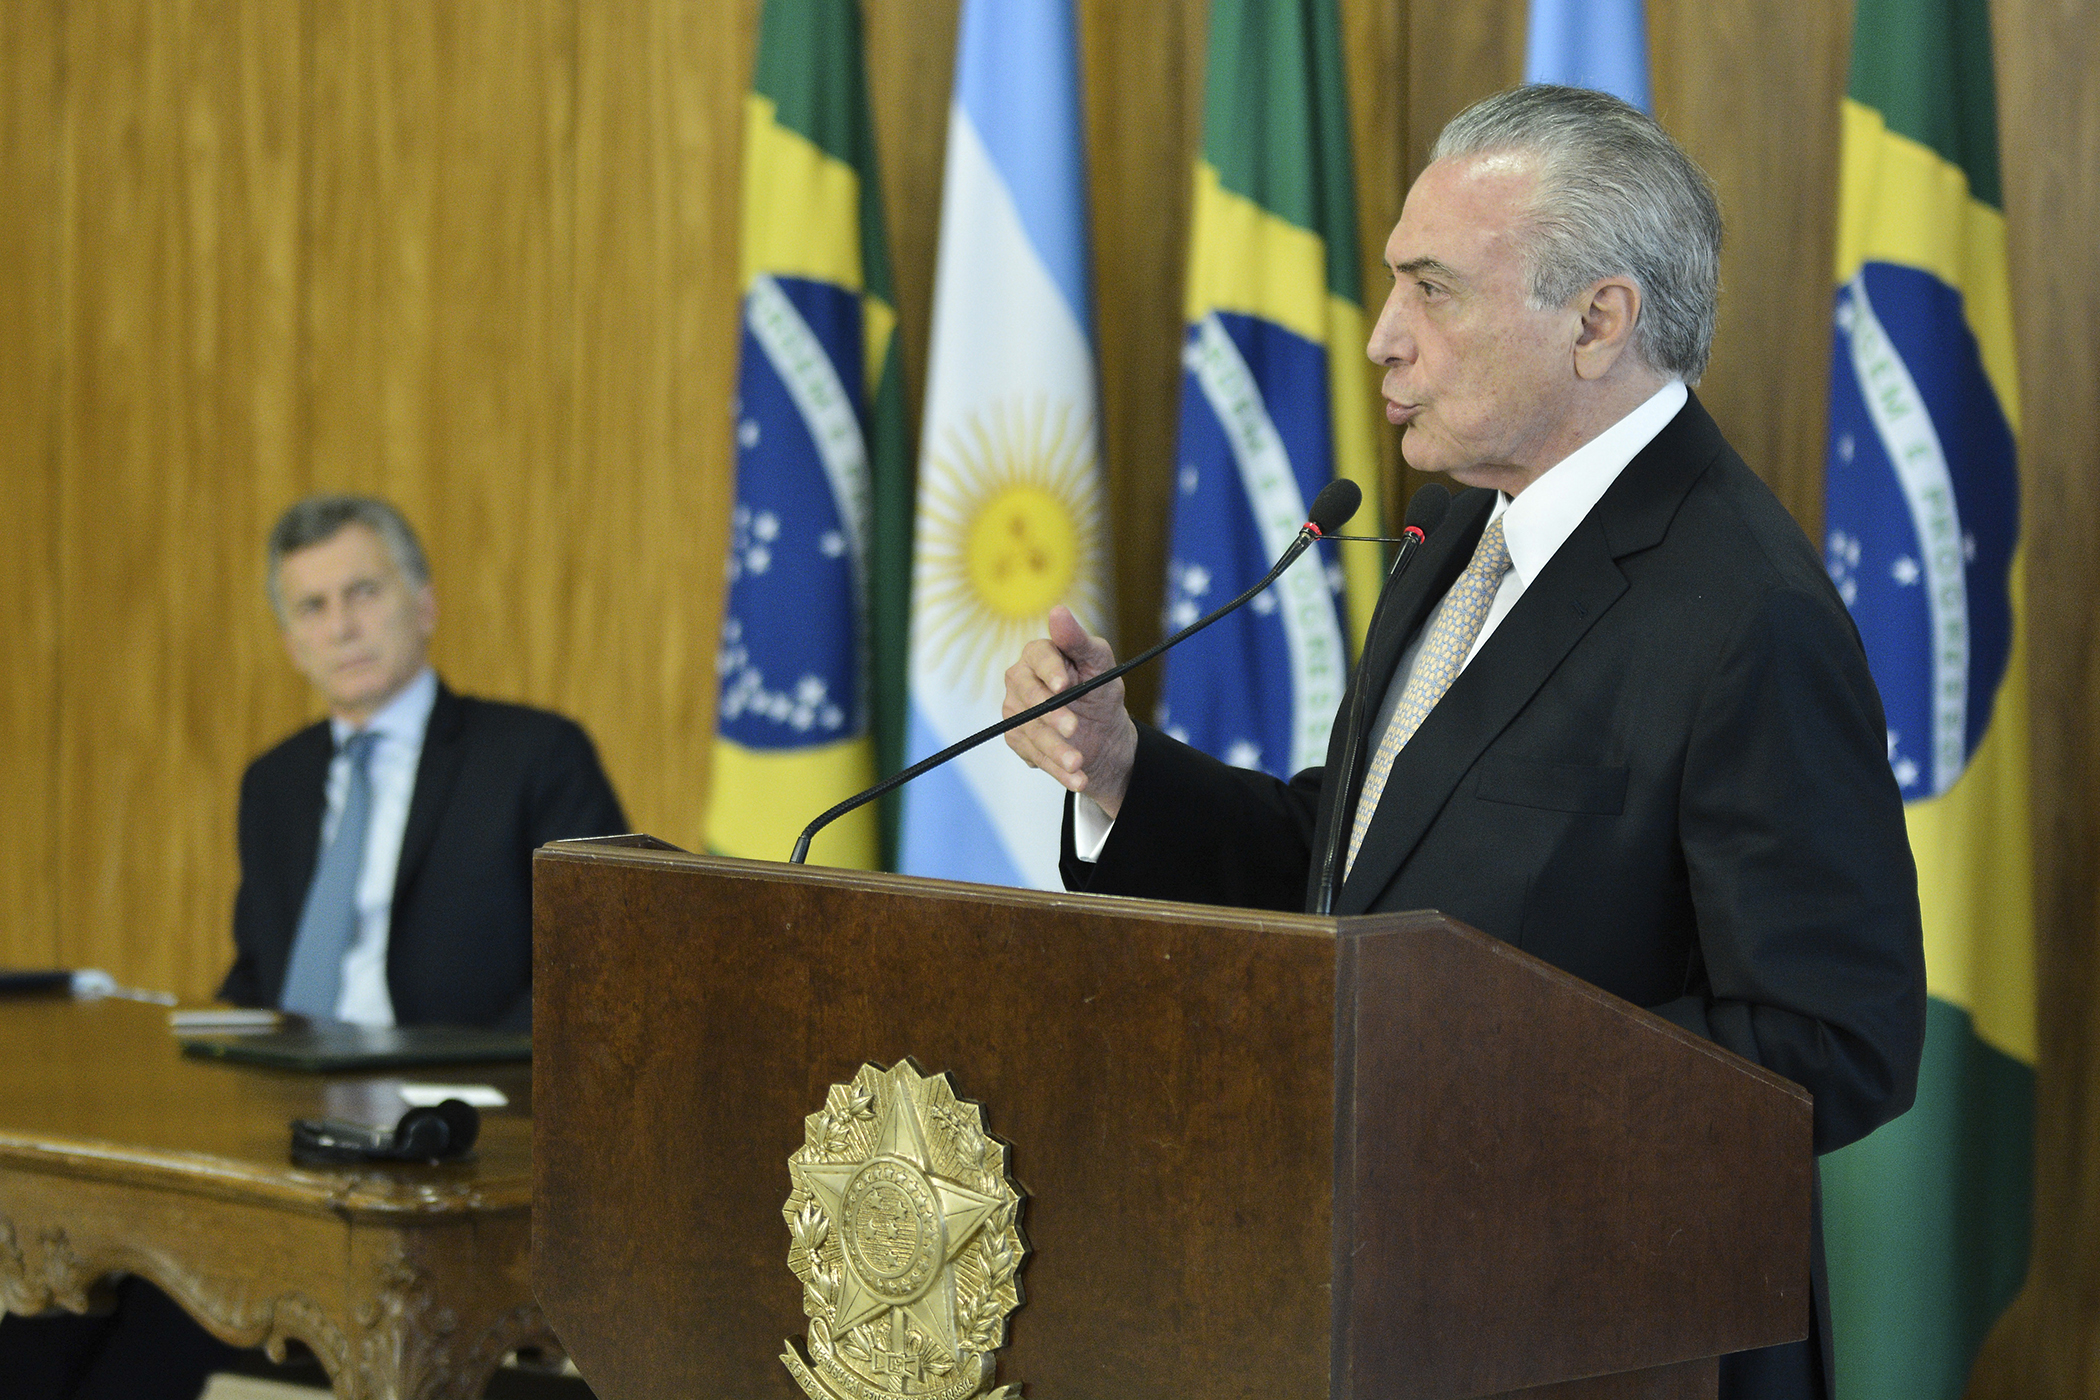 Michel Temer President of Brazil speaks during a press conference prior to signing Cooperation Agreements between Argentina and Brazil as part of an official visit to Planalto Palace on February 07, 2017 in Brasilia, Brazil.